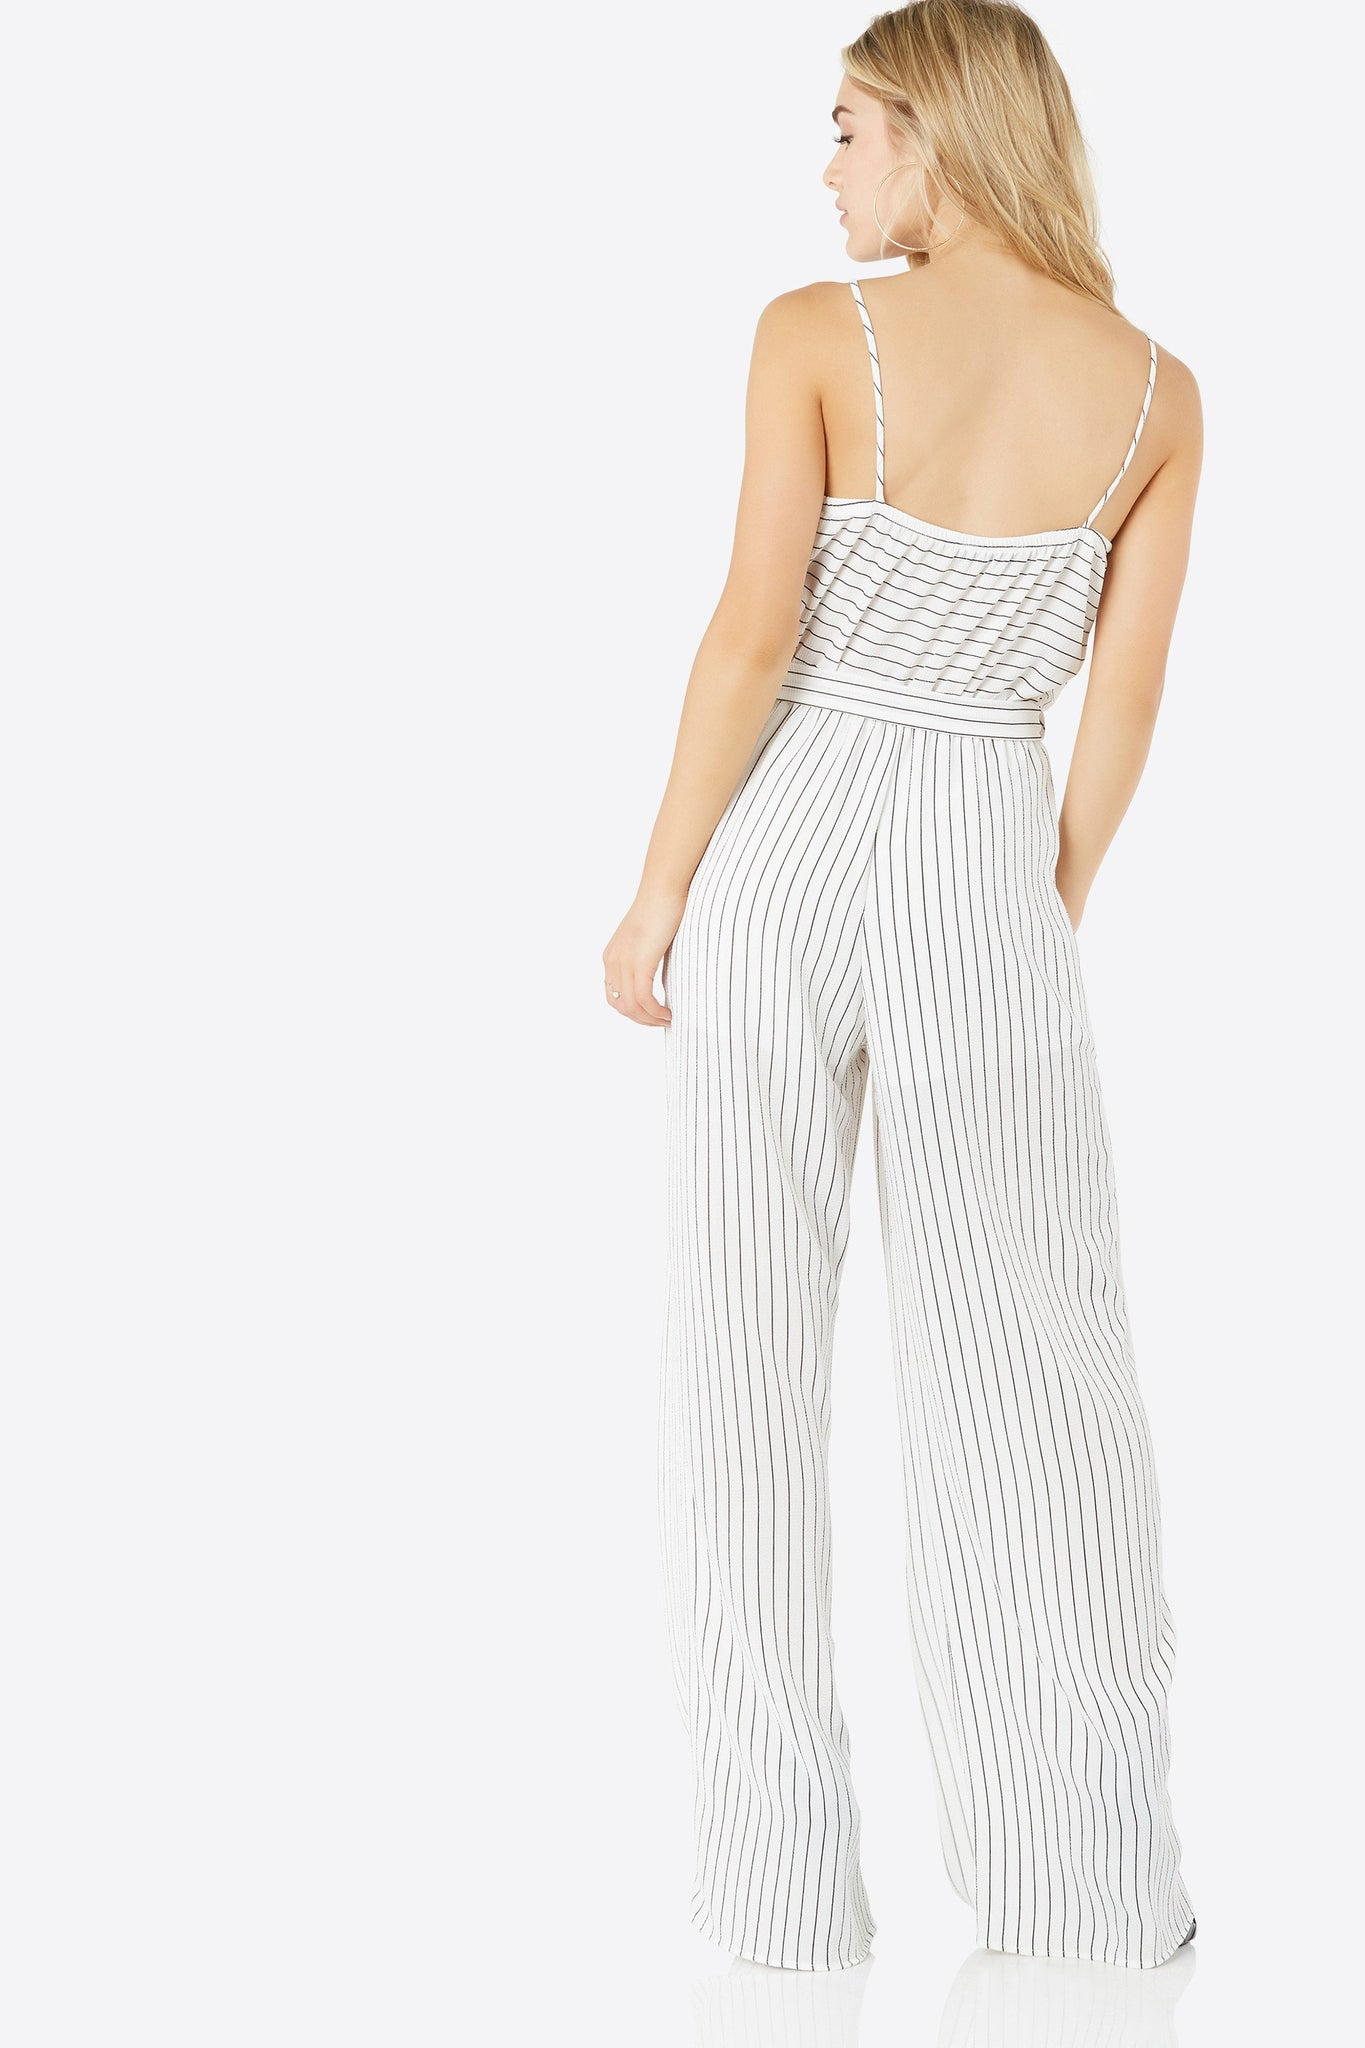 Sleeveless jumpsuit with stripe print throughout. Deep V-neckline with waist tie detailing and wide leg fit.